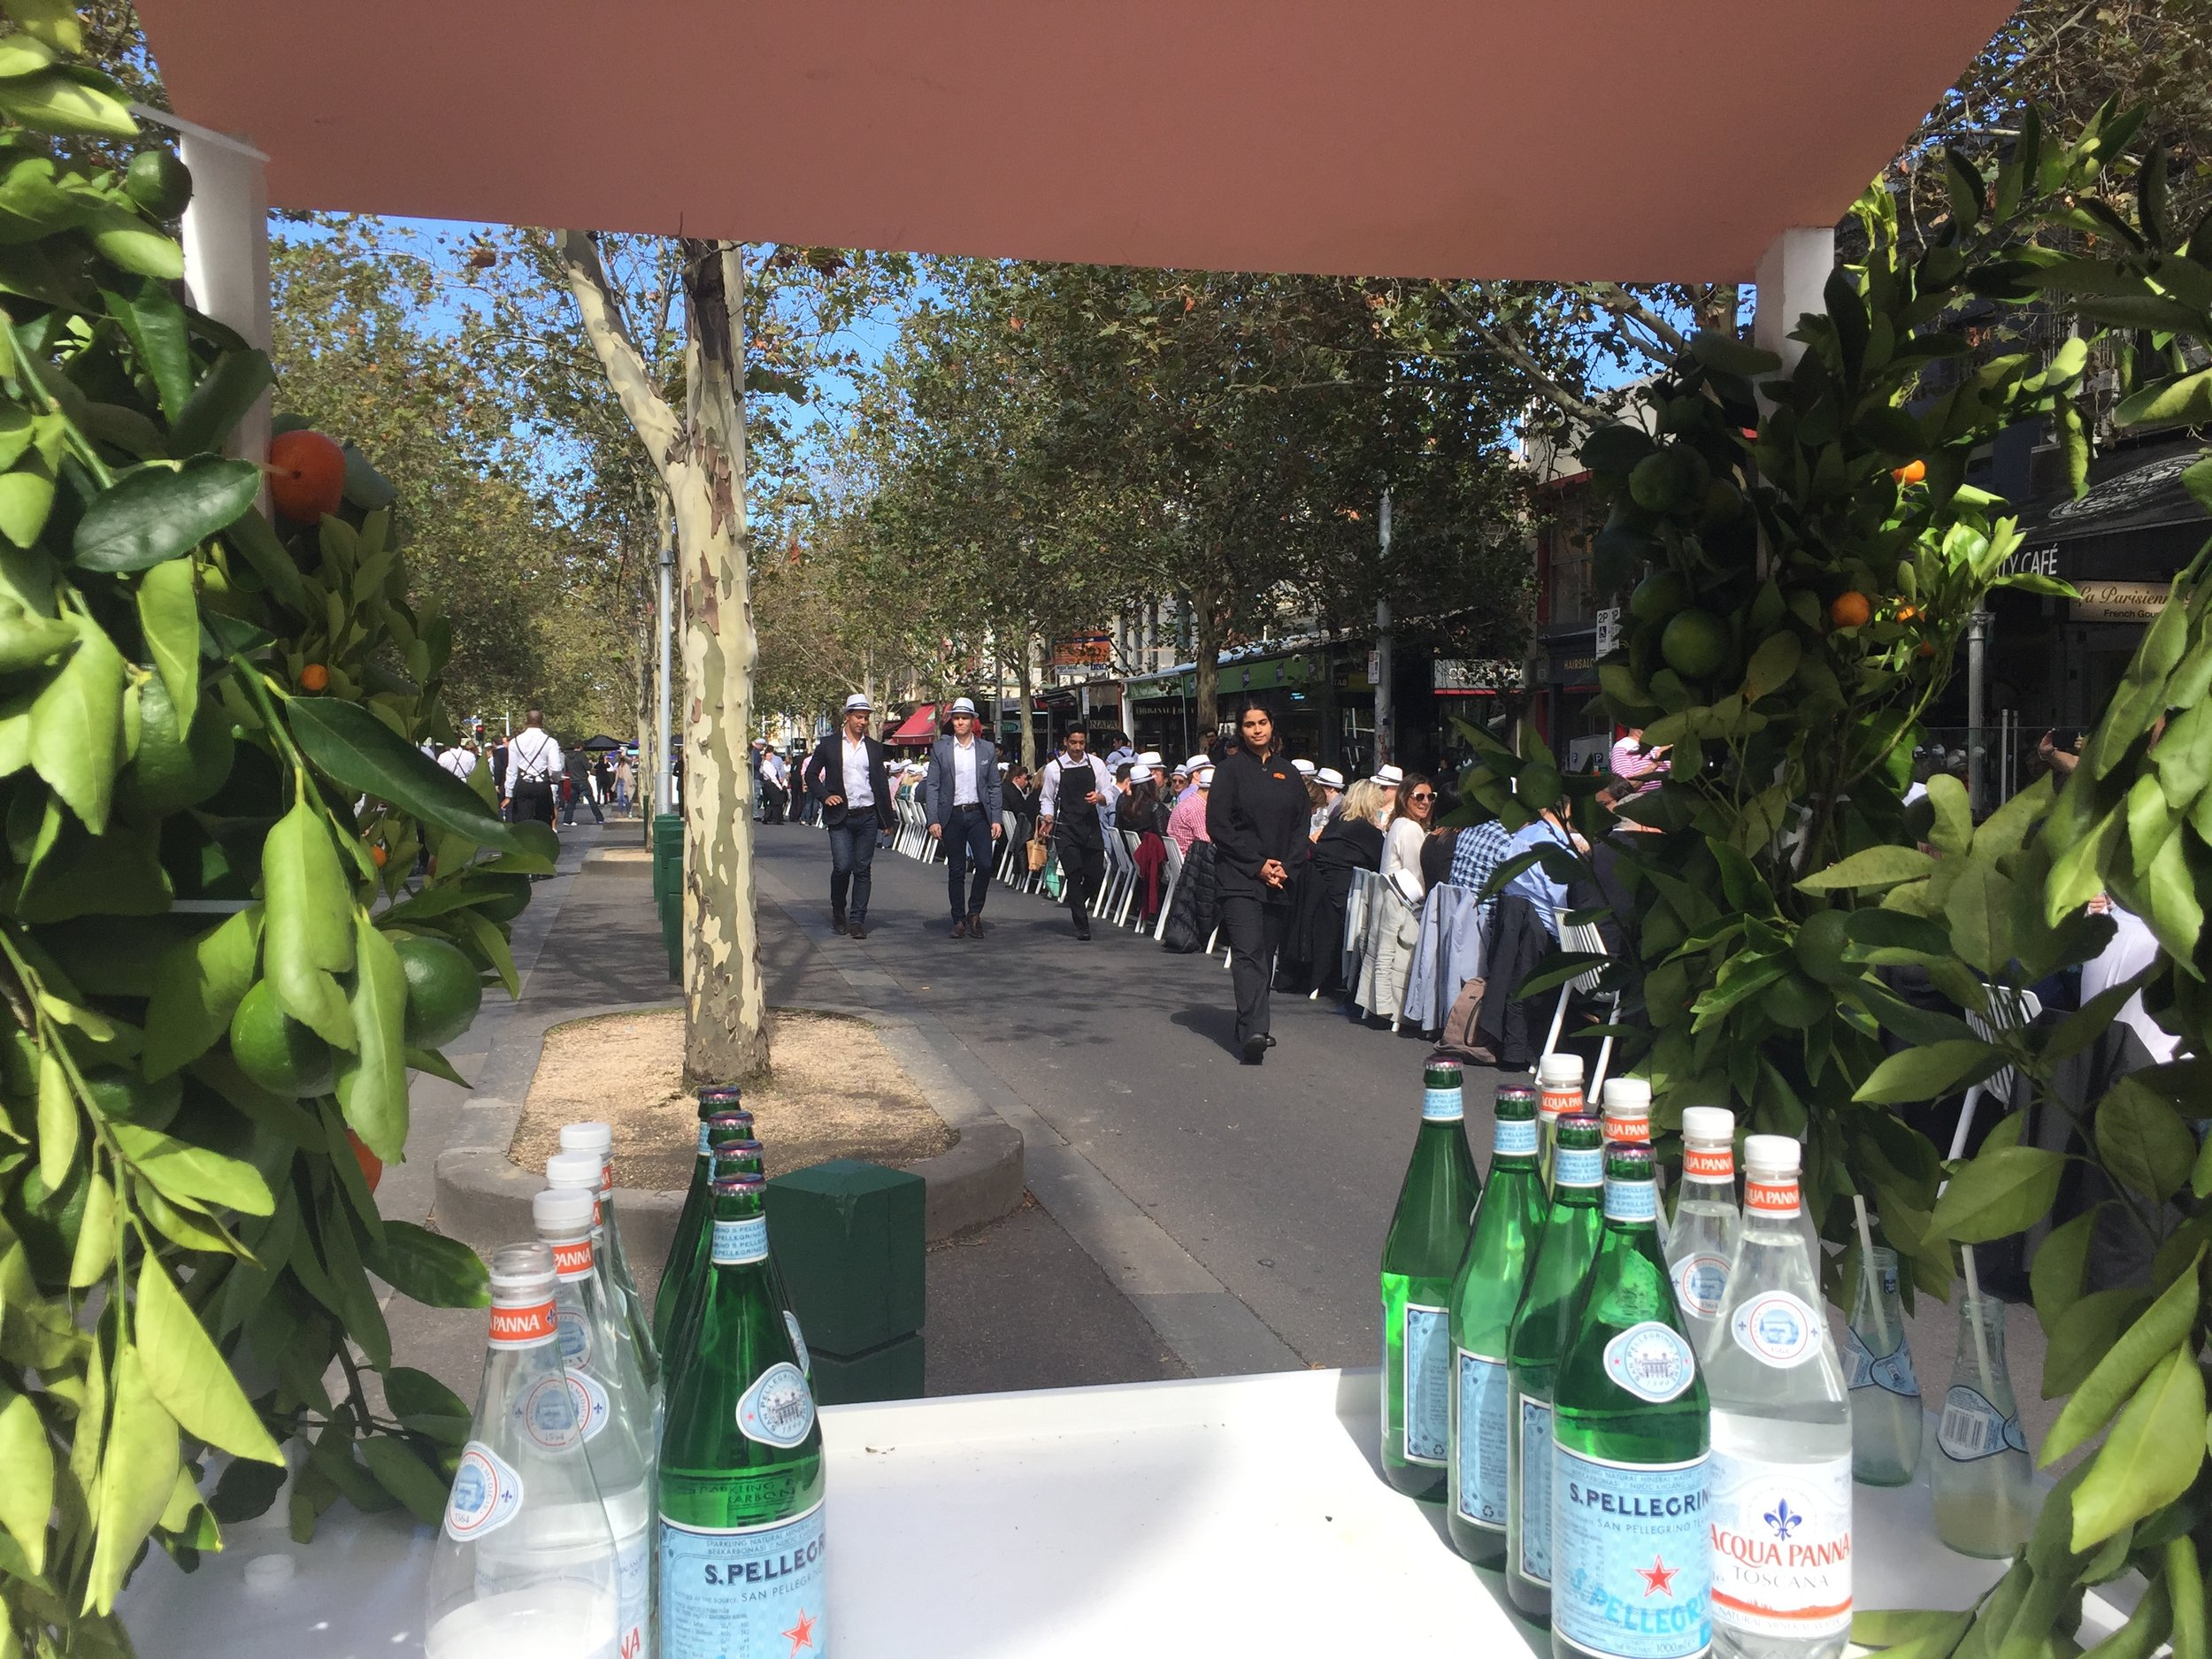 Melbourne Food and Wine Festival's 25th Anniversary